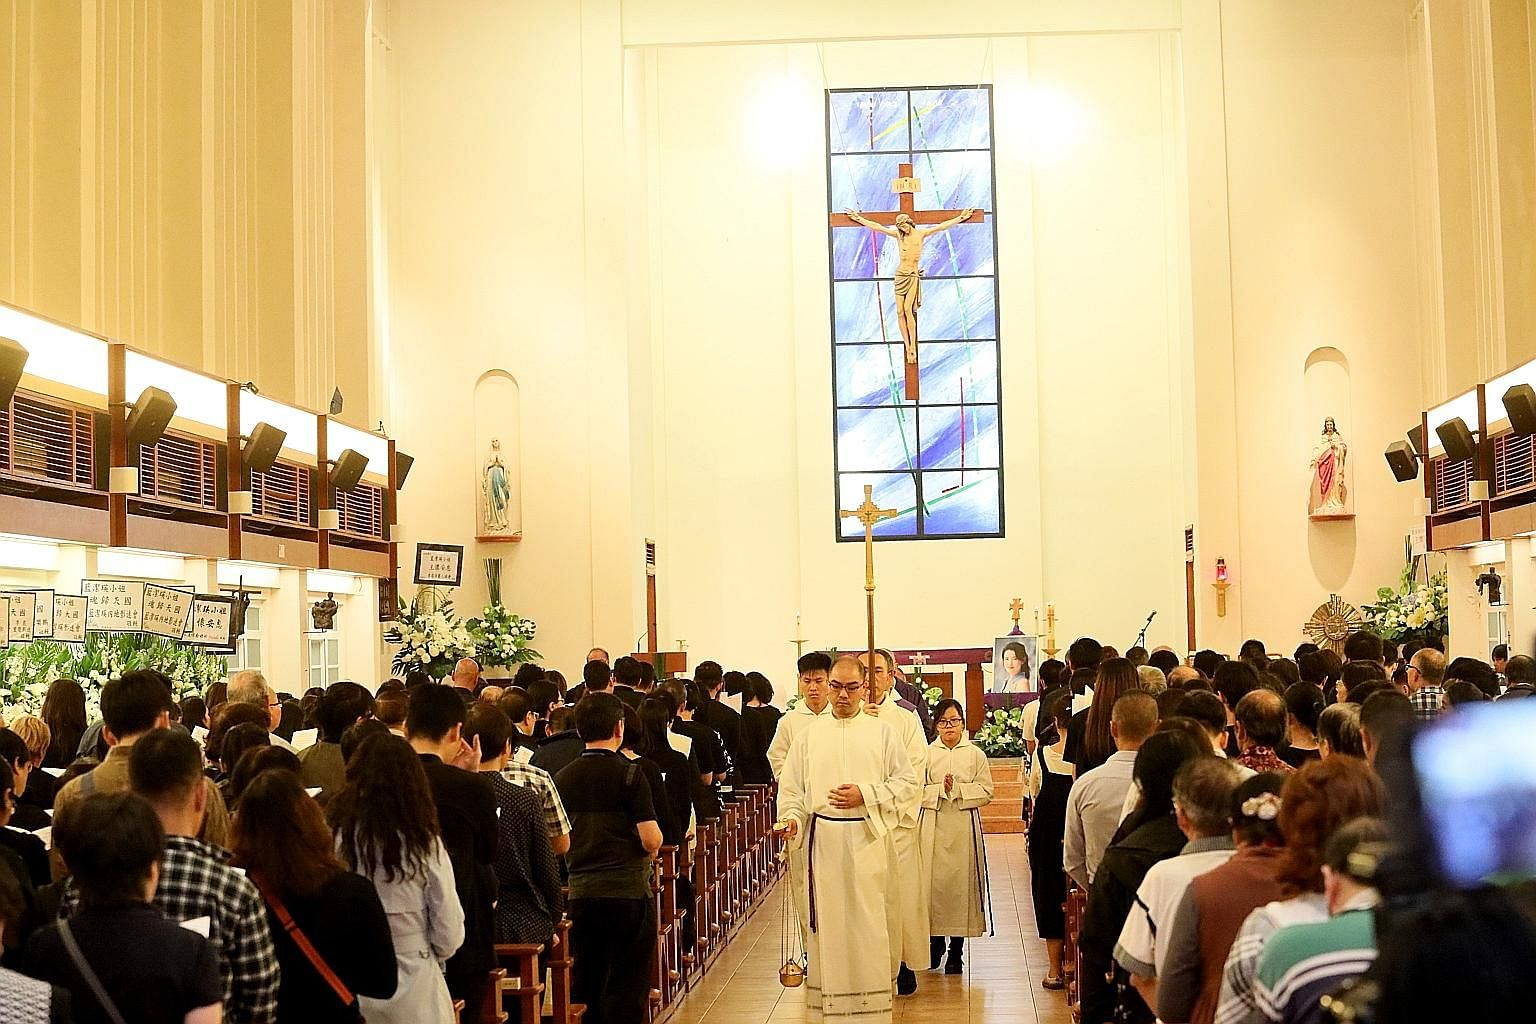 Fans and celebrities from the Hong Kong entertainment world attended the memorial service for the late TVB actress Yammie Lam at St Anne's Church in Stanley last Friday.